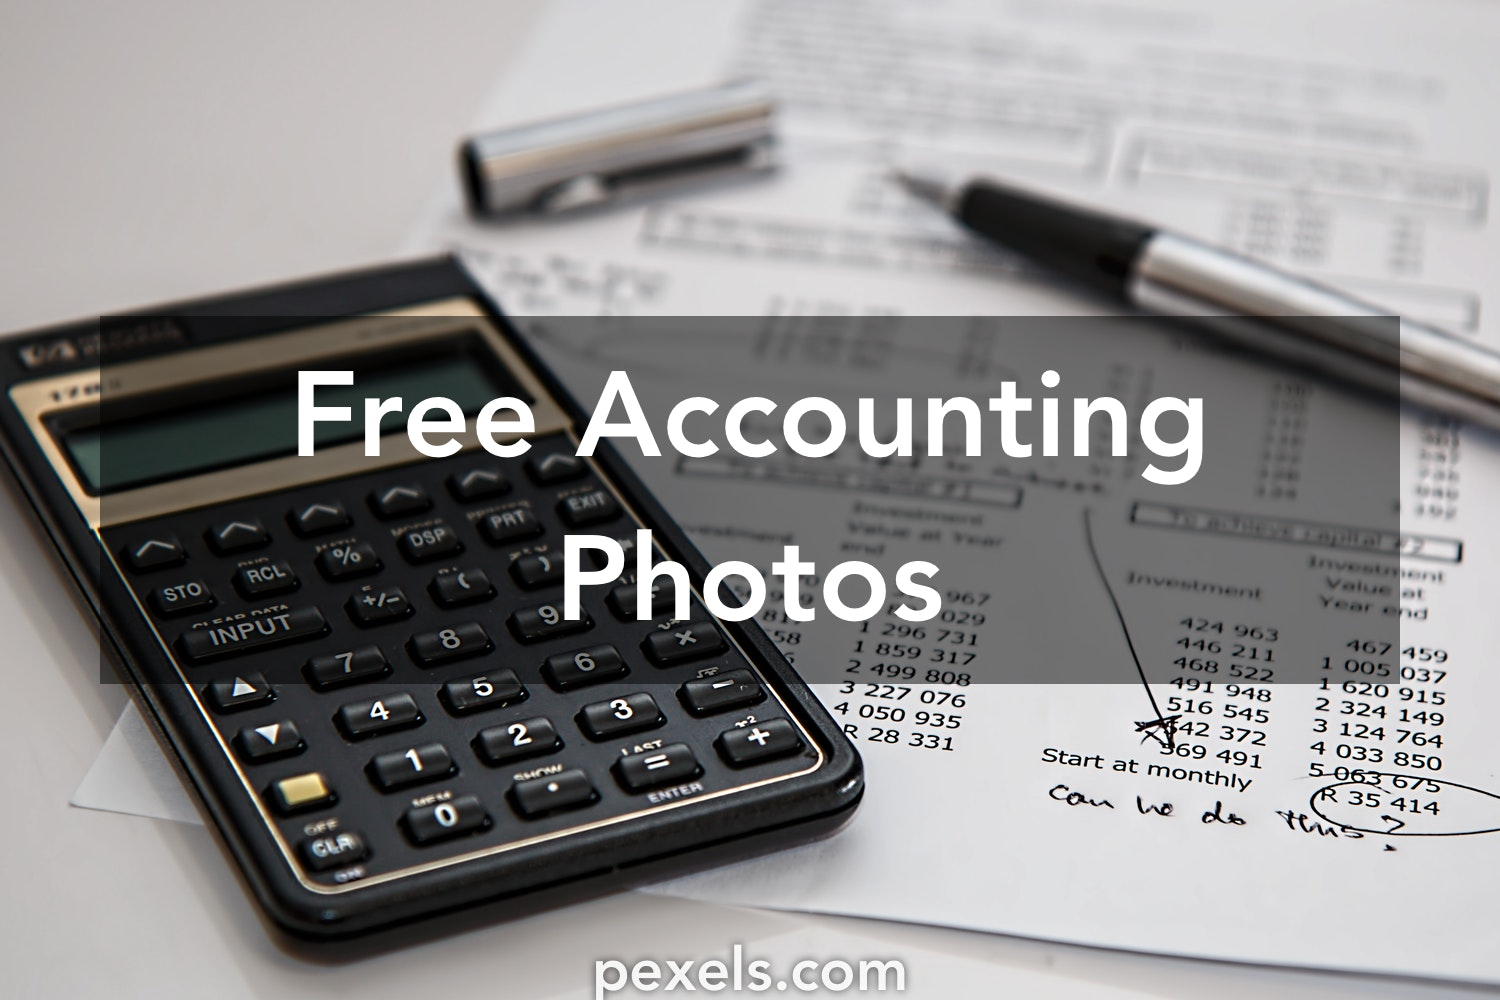 Free stock photos of accounting · Pexels